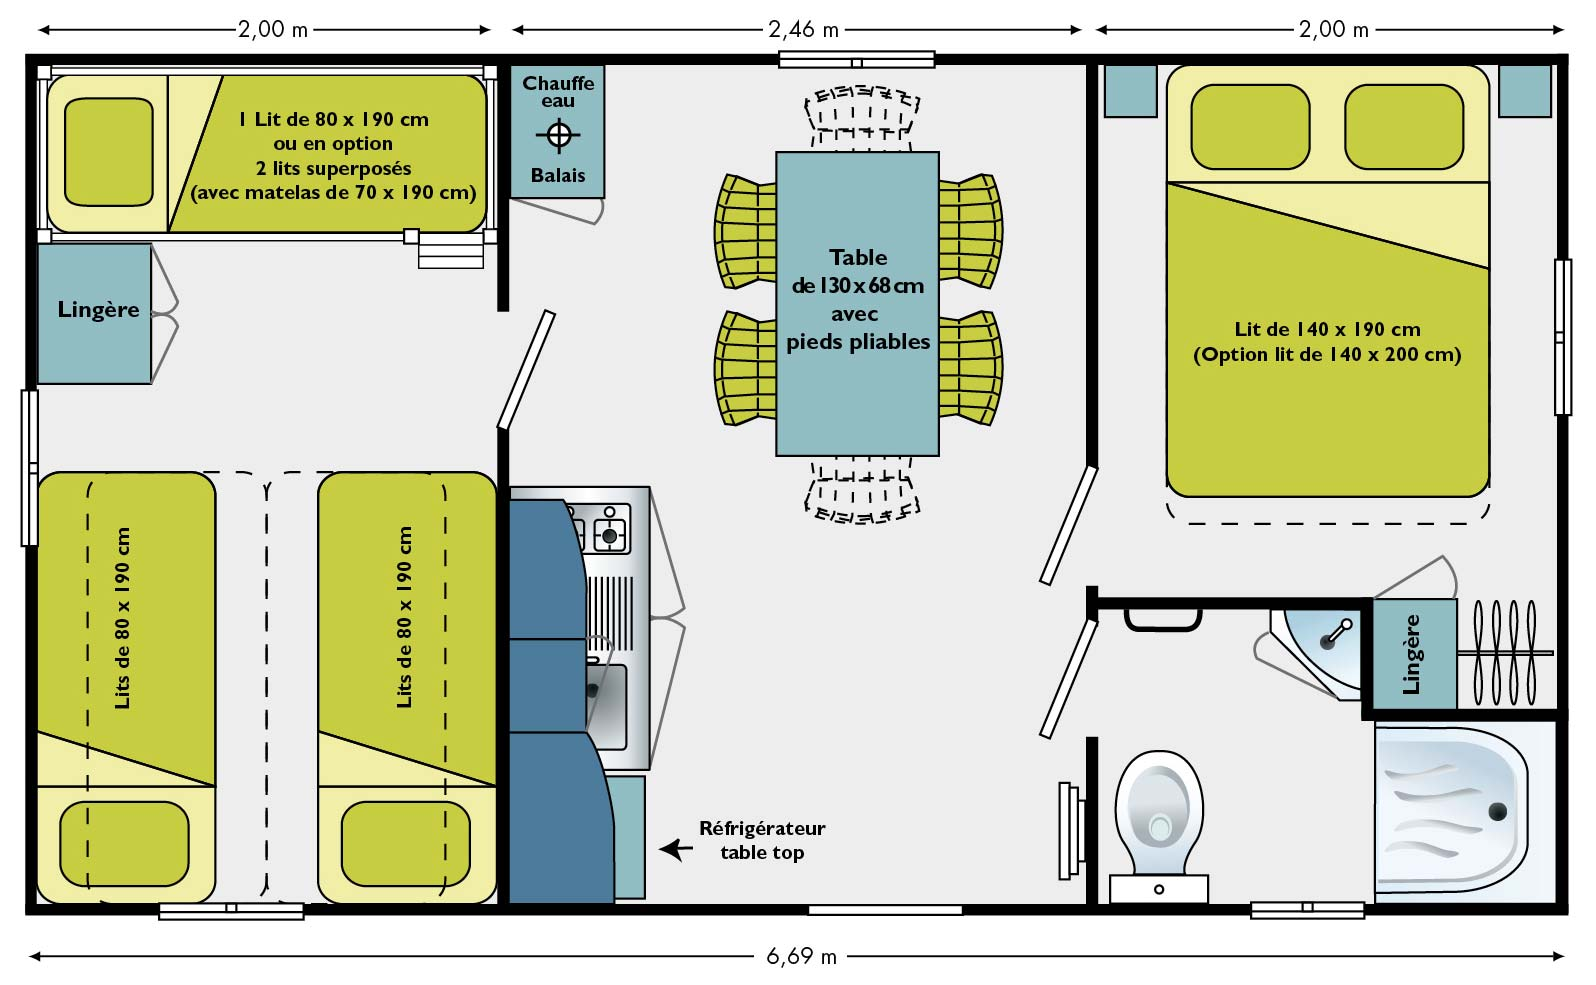 Plan du mobil-home IRM Domino 5 personnes